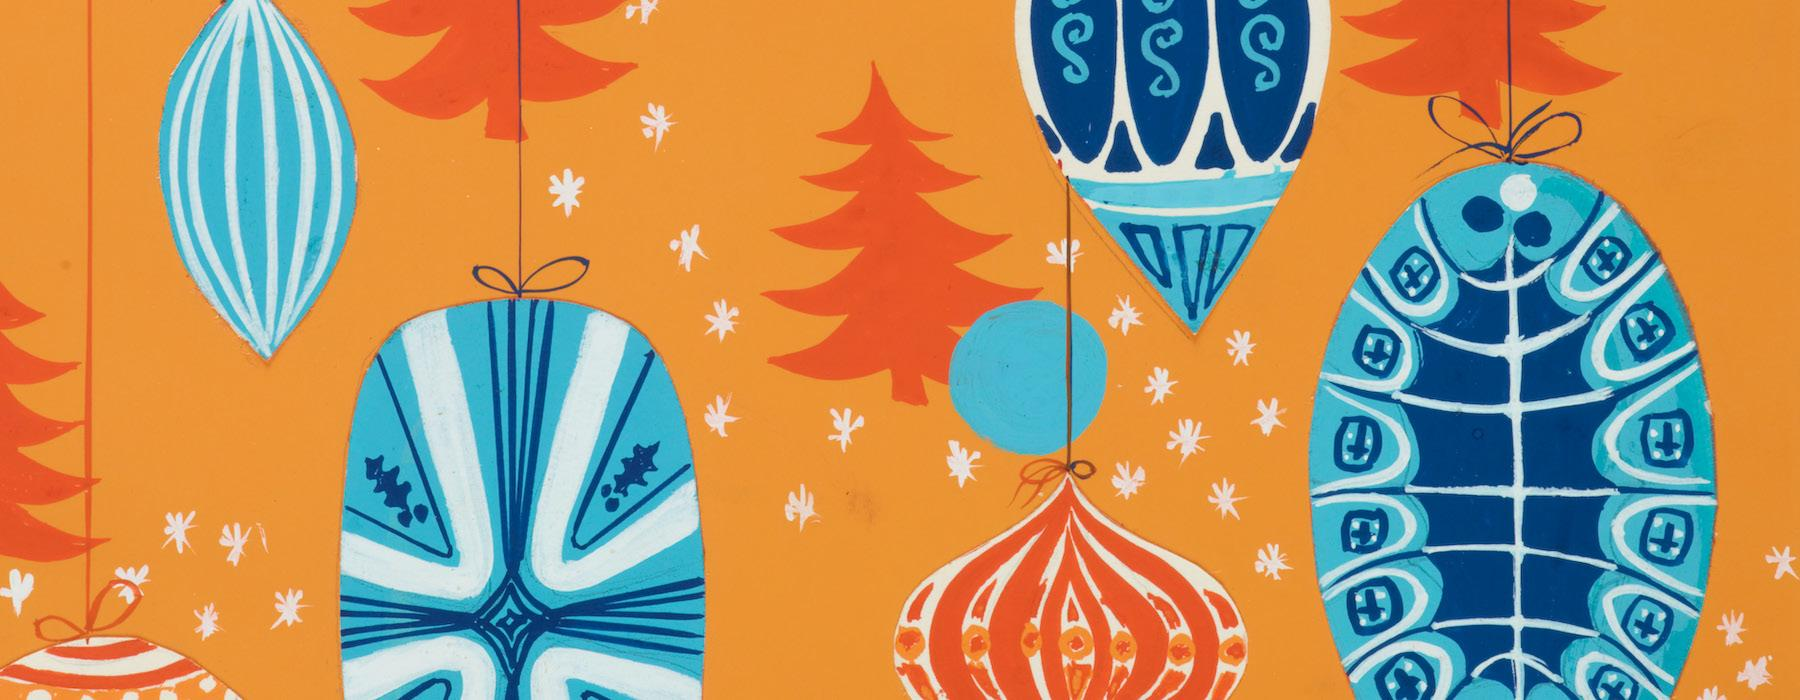 An image of blue stylised Christmas decorations and trees on an orange background